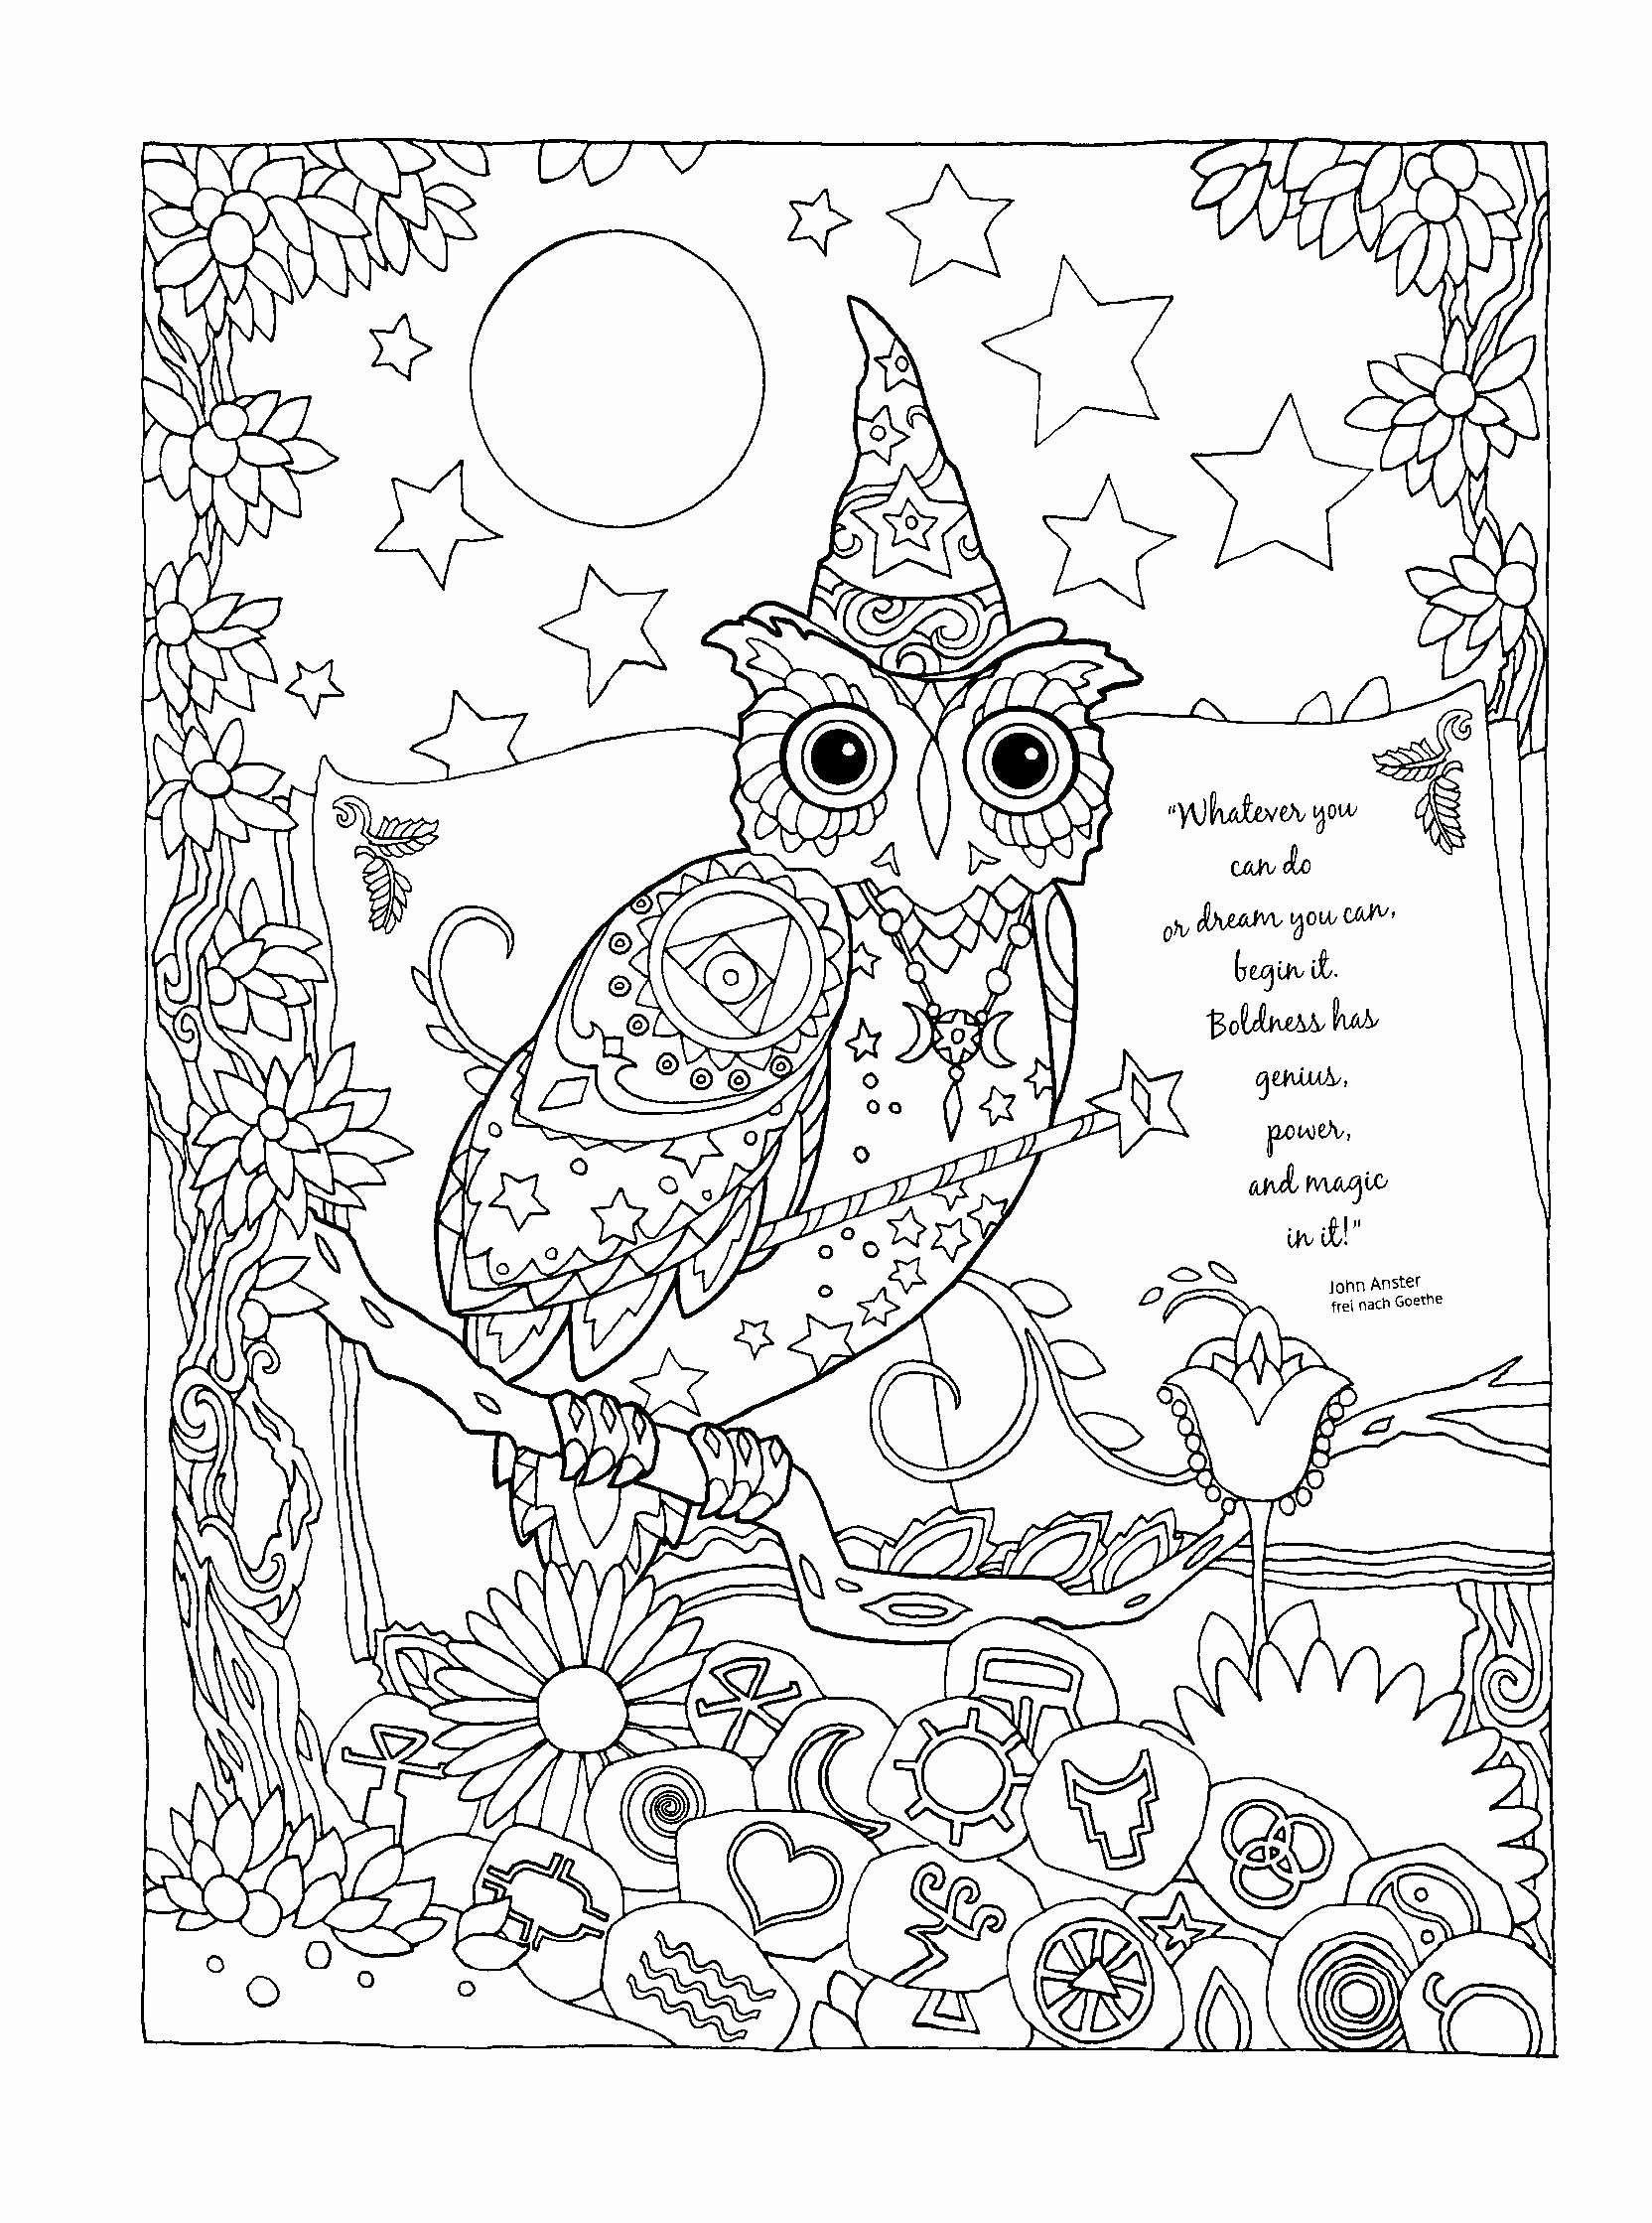 Alphabet Coloring Pages Printable Free Best Of 55 New Valentine Color By Number Owl Coloring Pages Halloween Coloring Pages Bird Coloring Pages